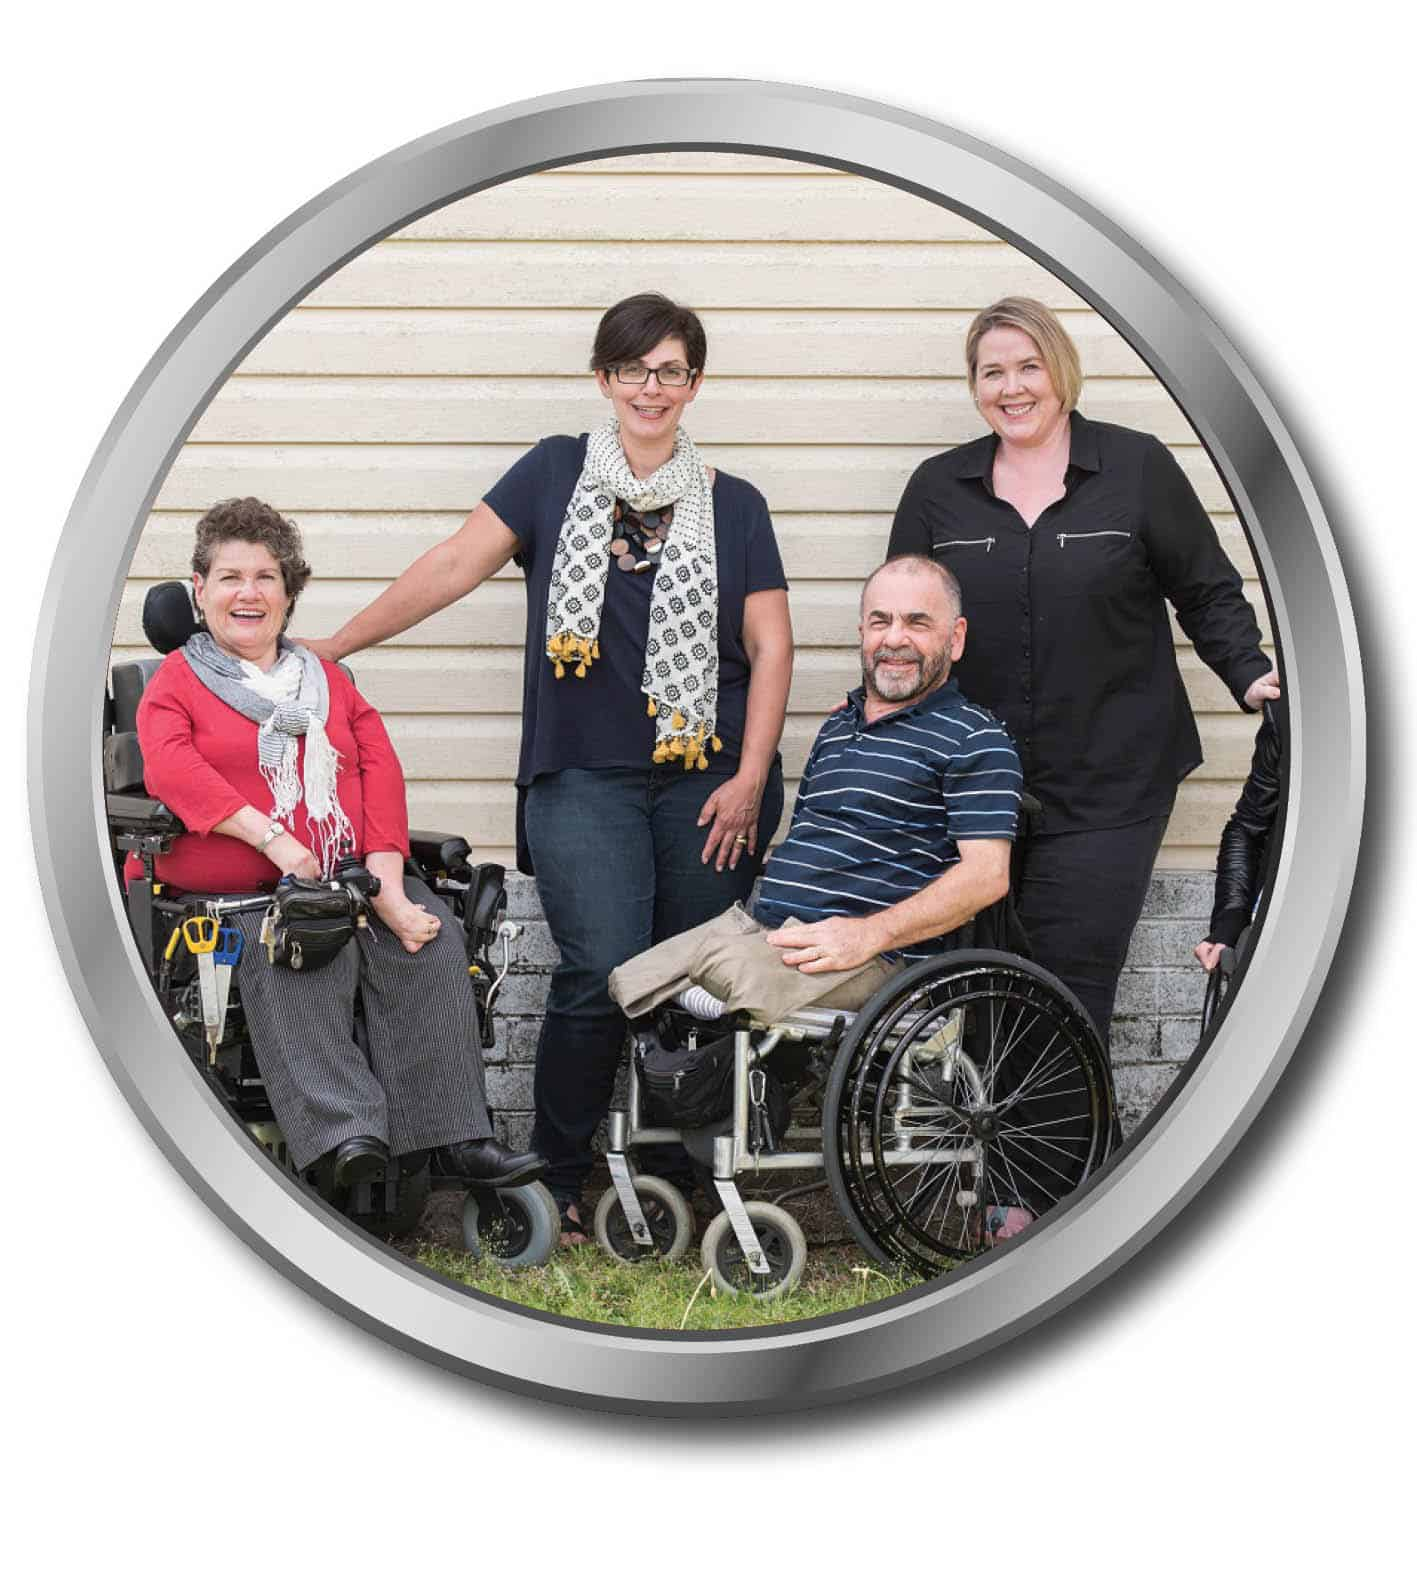 Spinal Cord Injuries Australia